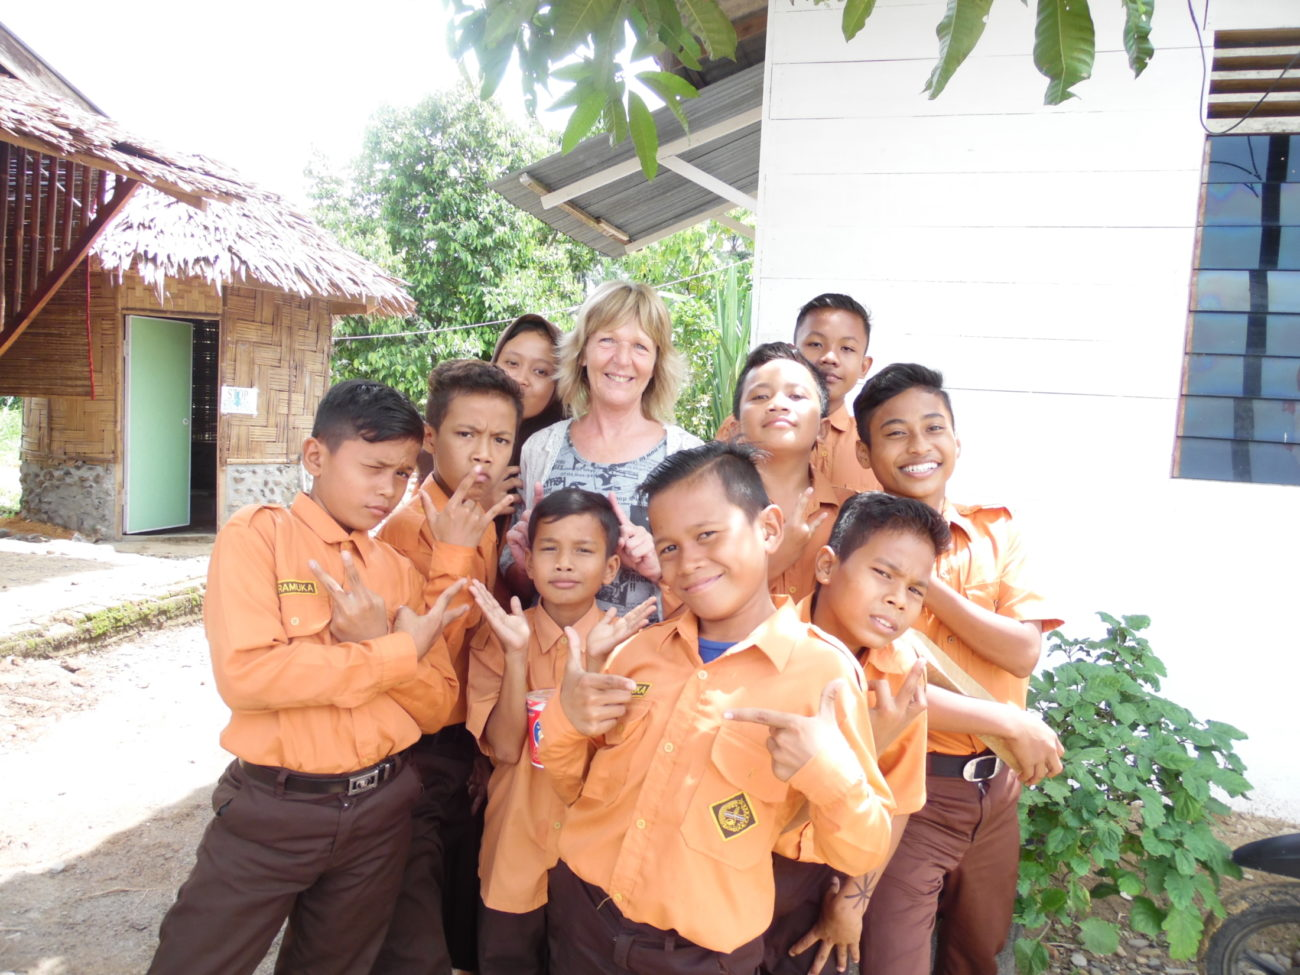 A group of school children in Sumatra